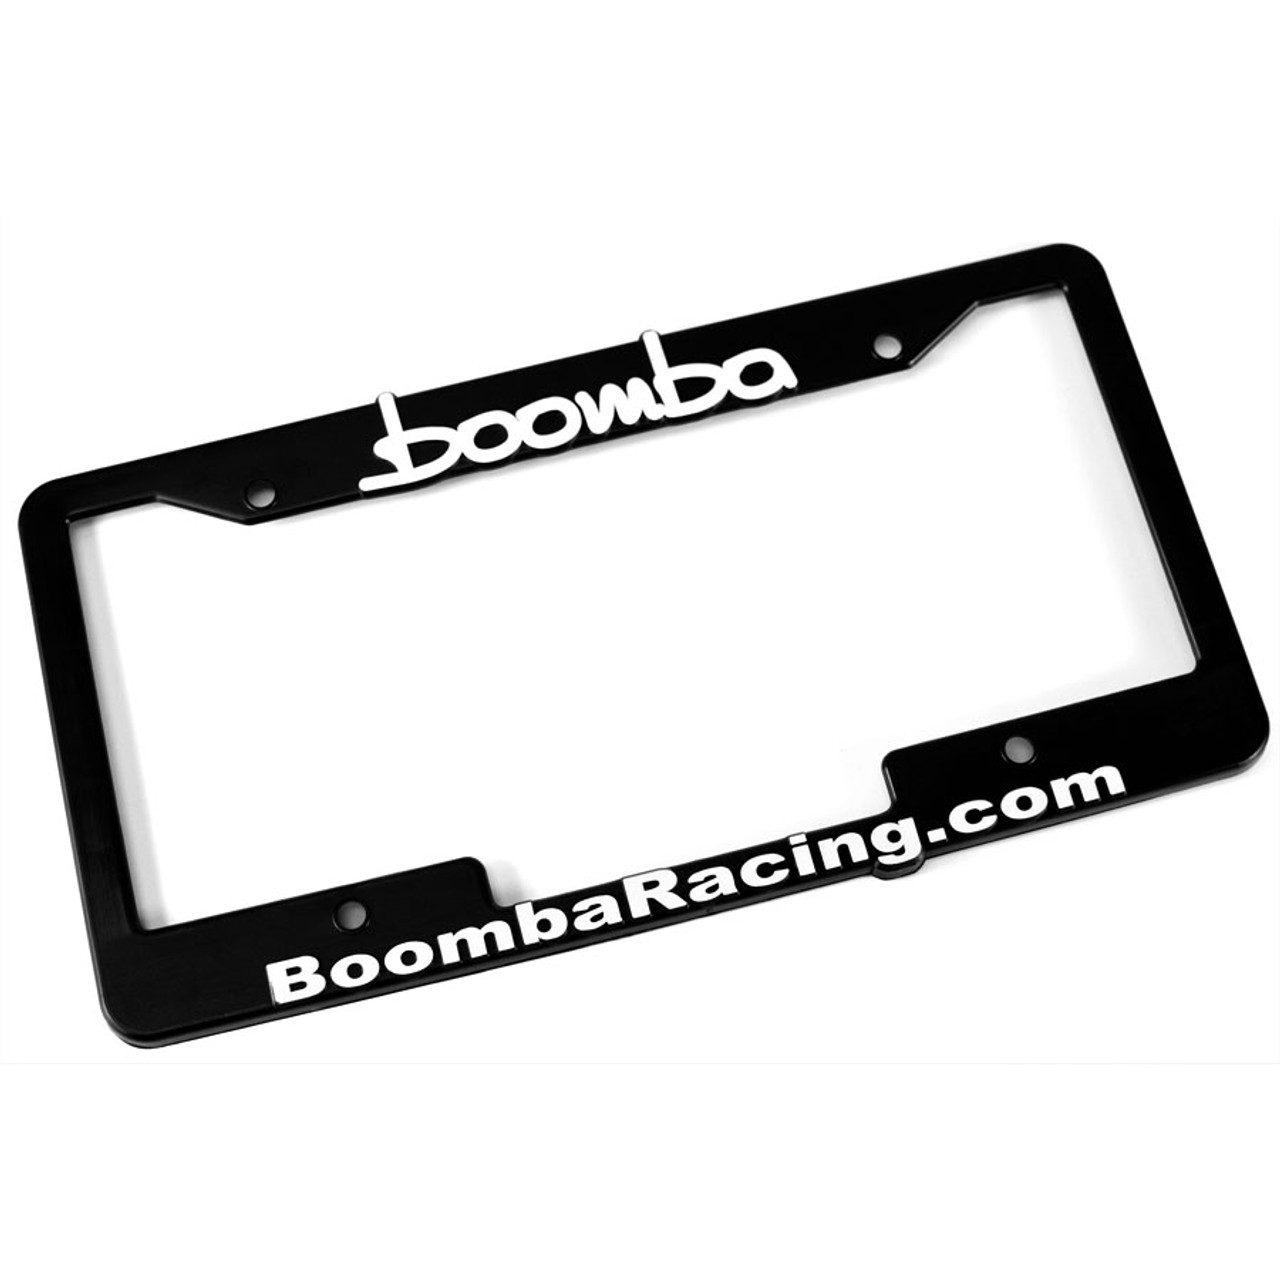 Boomba Racing License Plate Frame